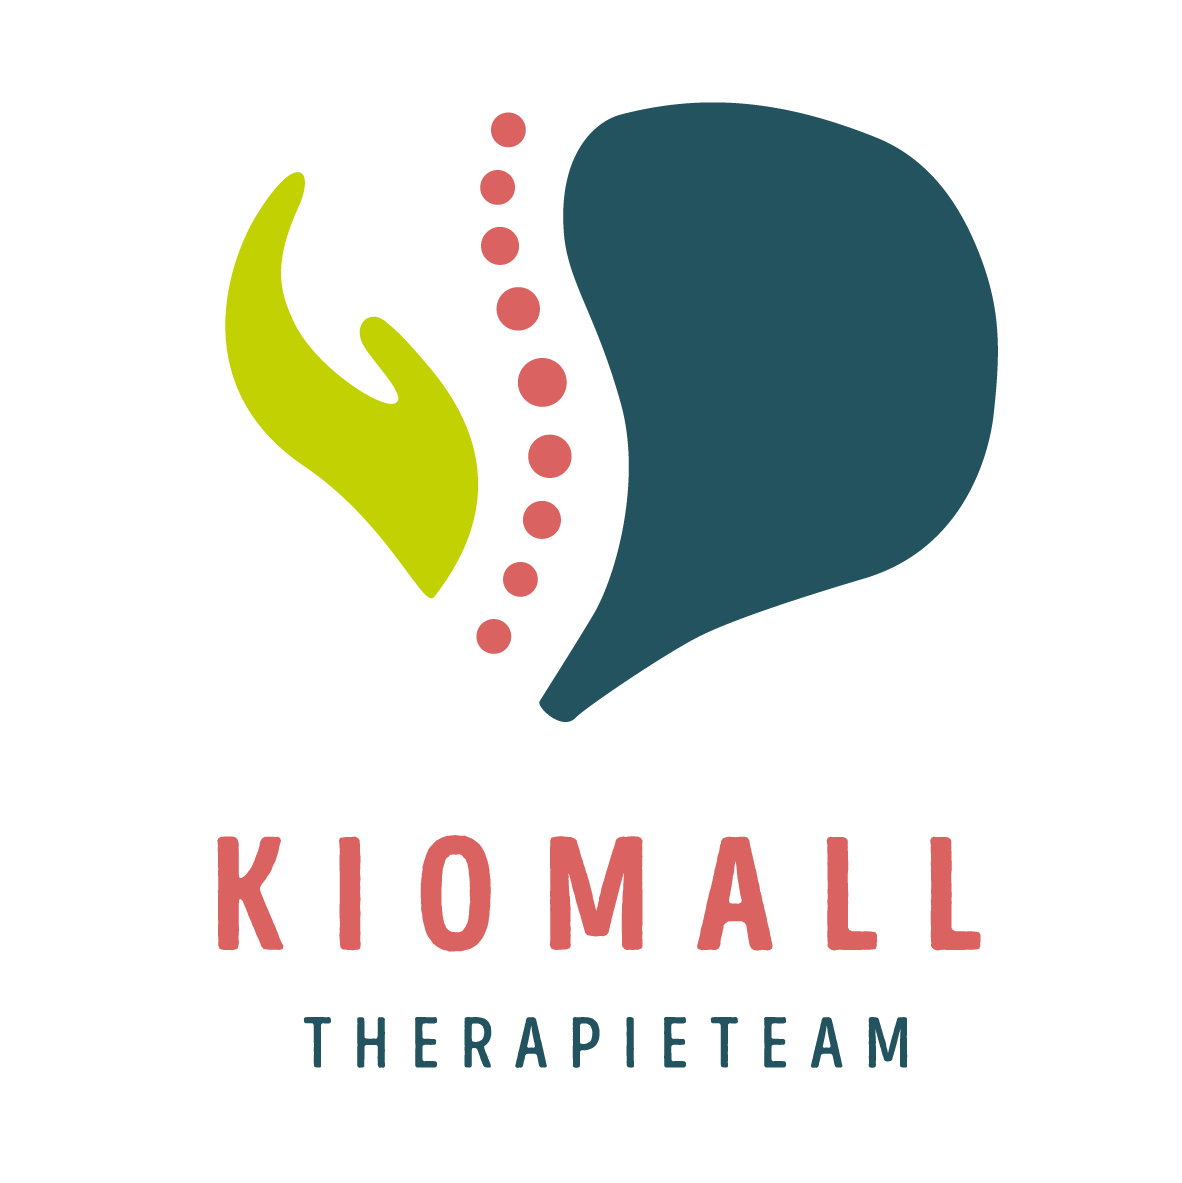 Therapieteam Kiomall